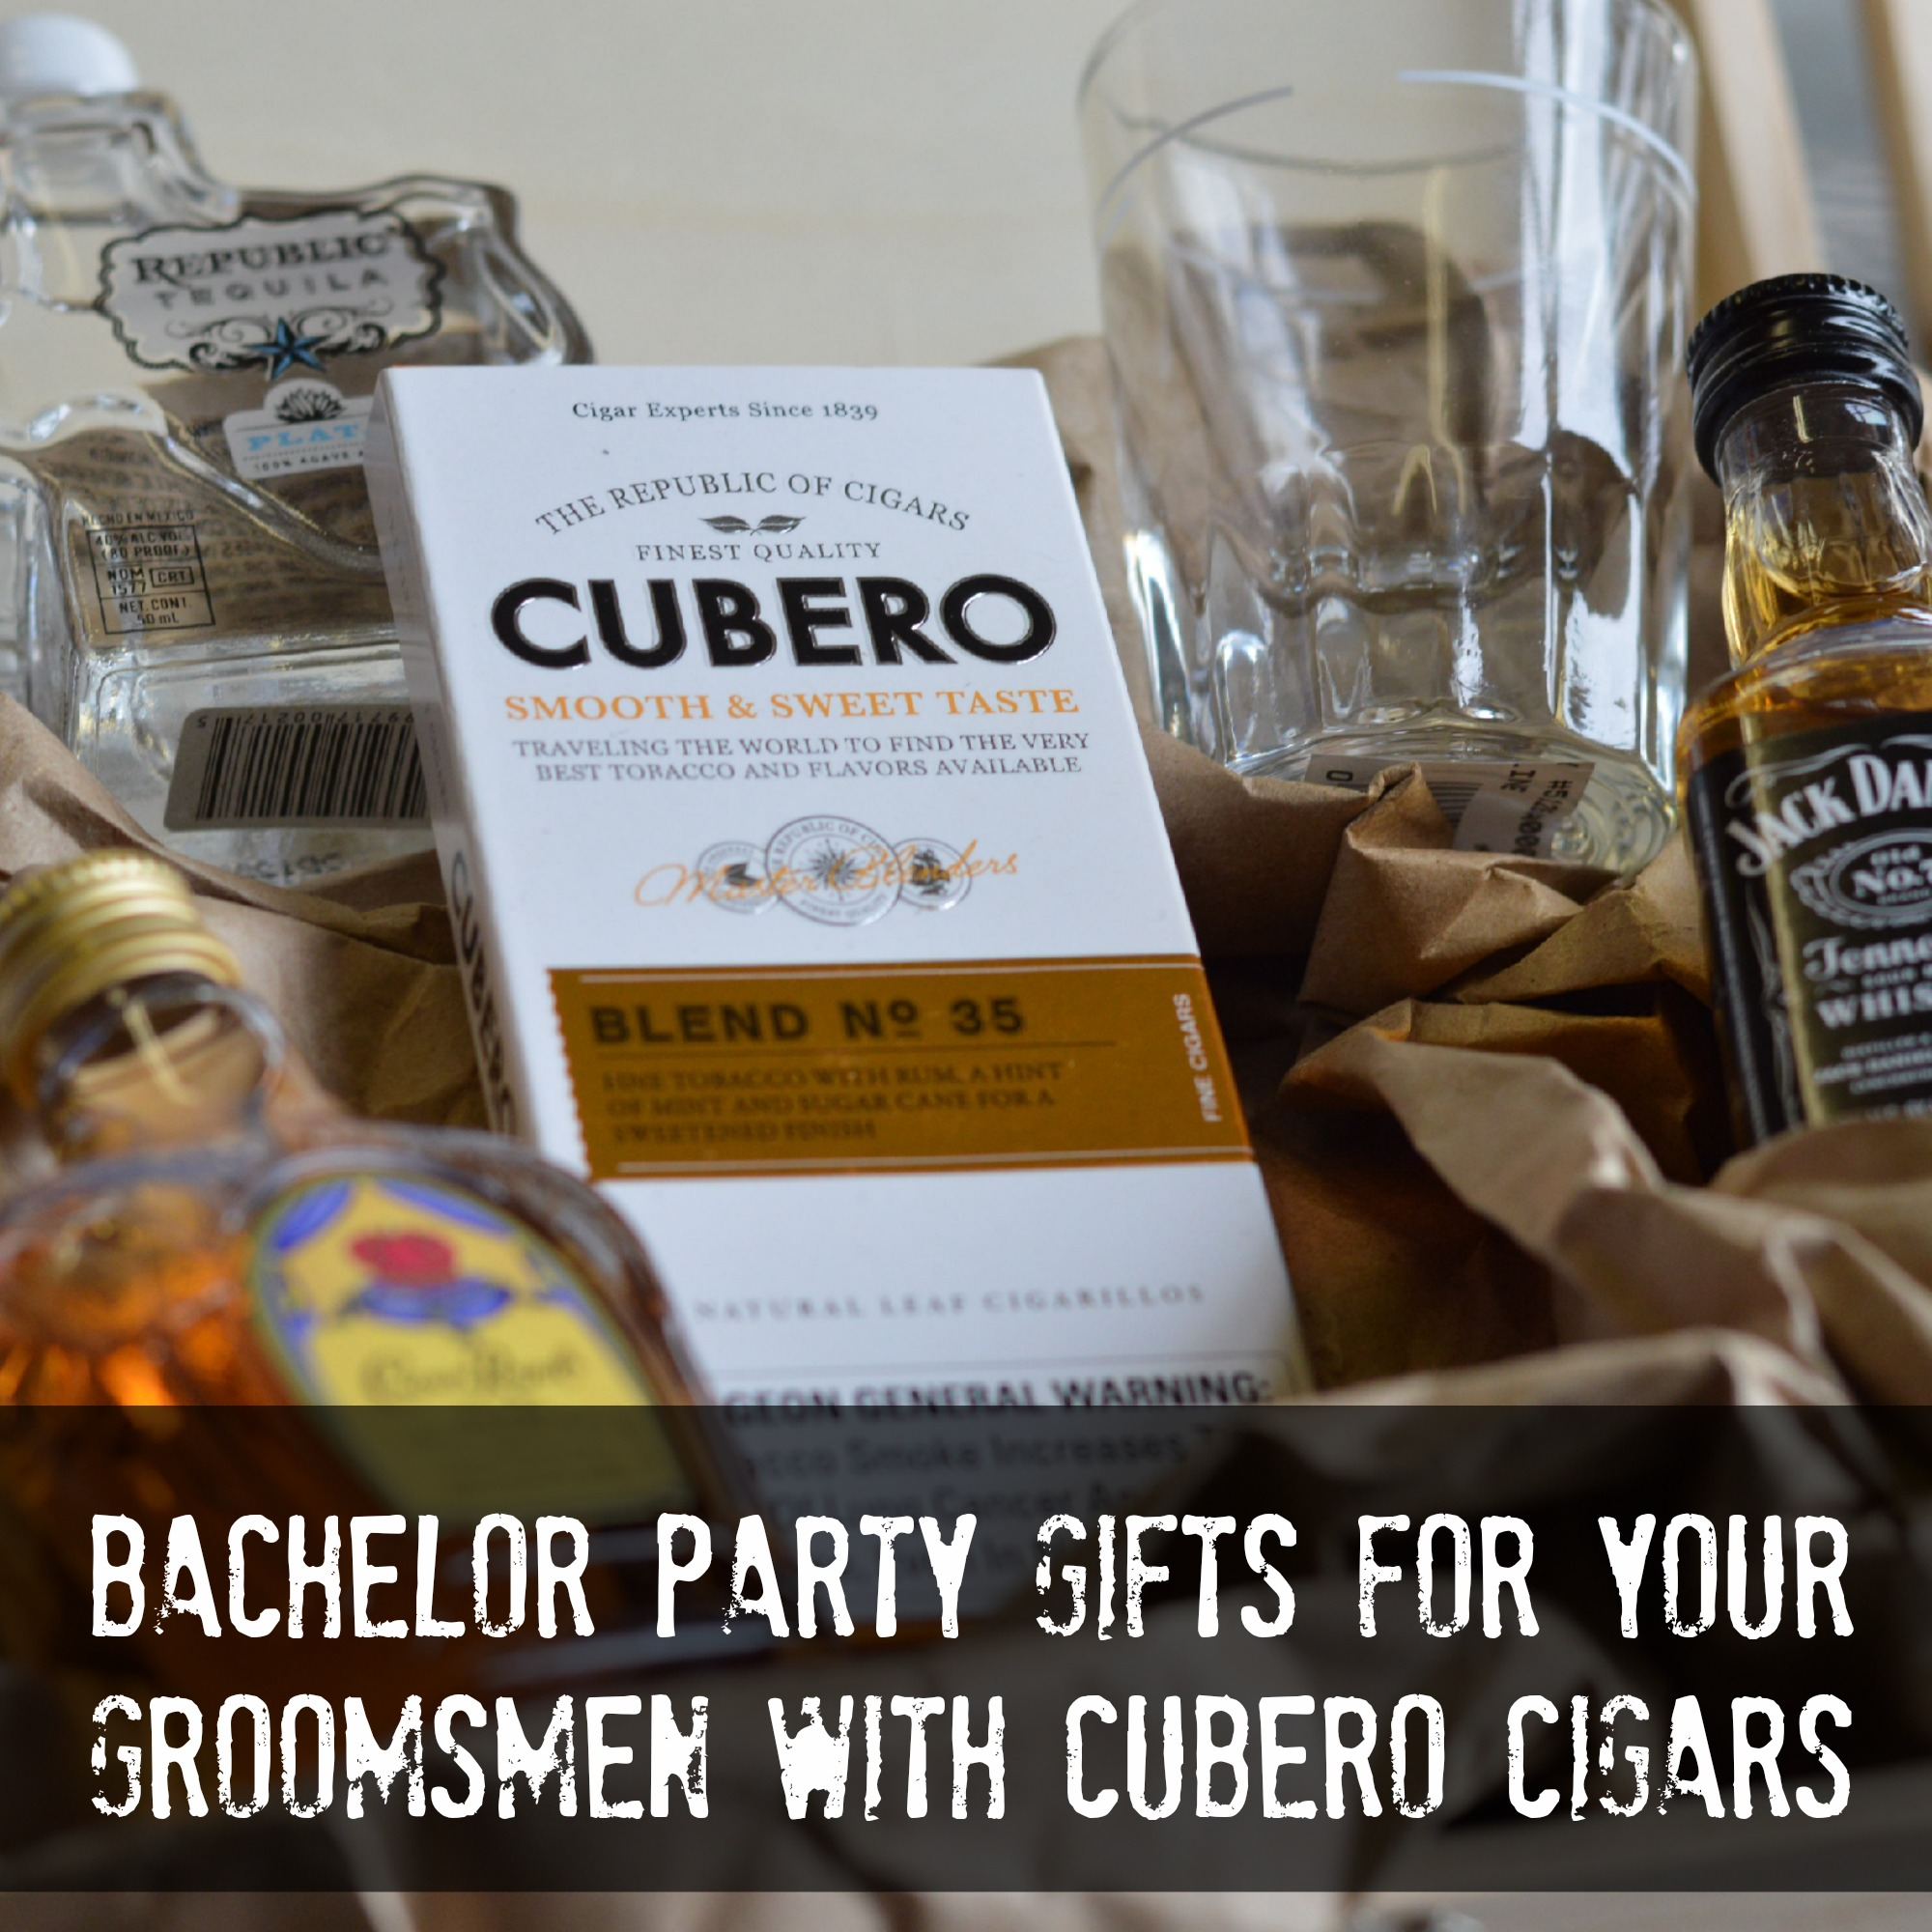 Bachelor Party Gifts for your Groomsmen with Cubero Cigars ...